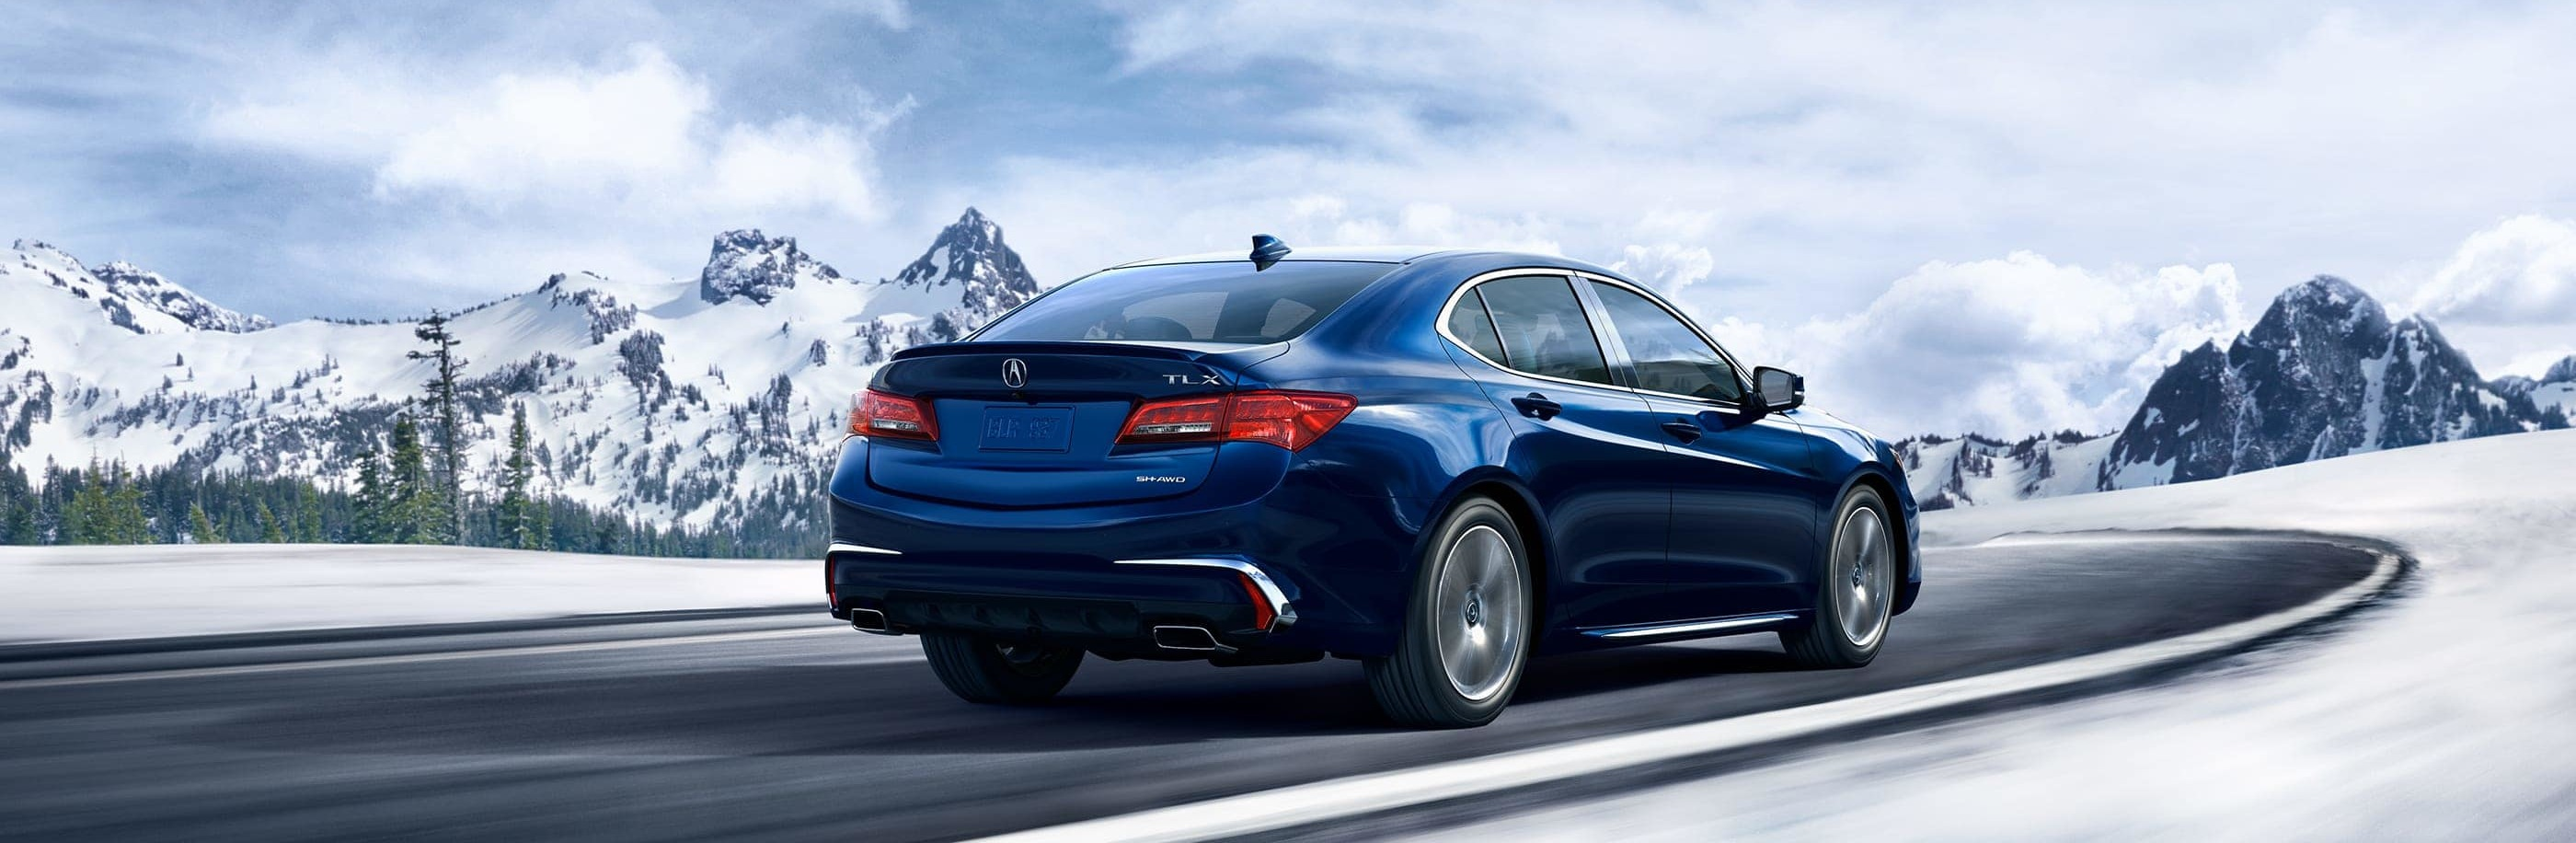 2020 Acura TLX Leasing near Fairfax, VA